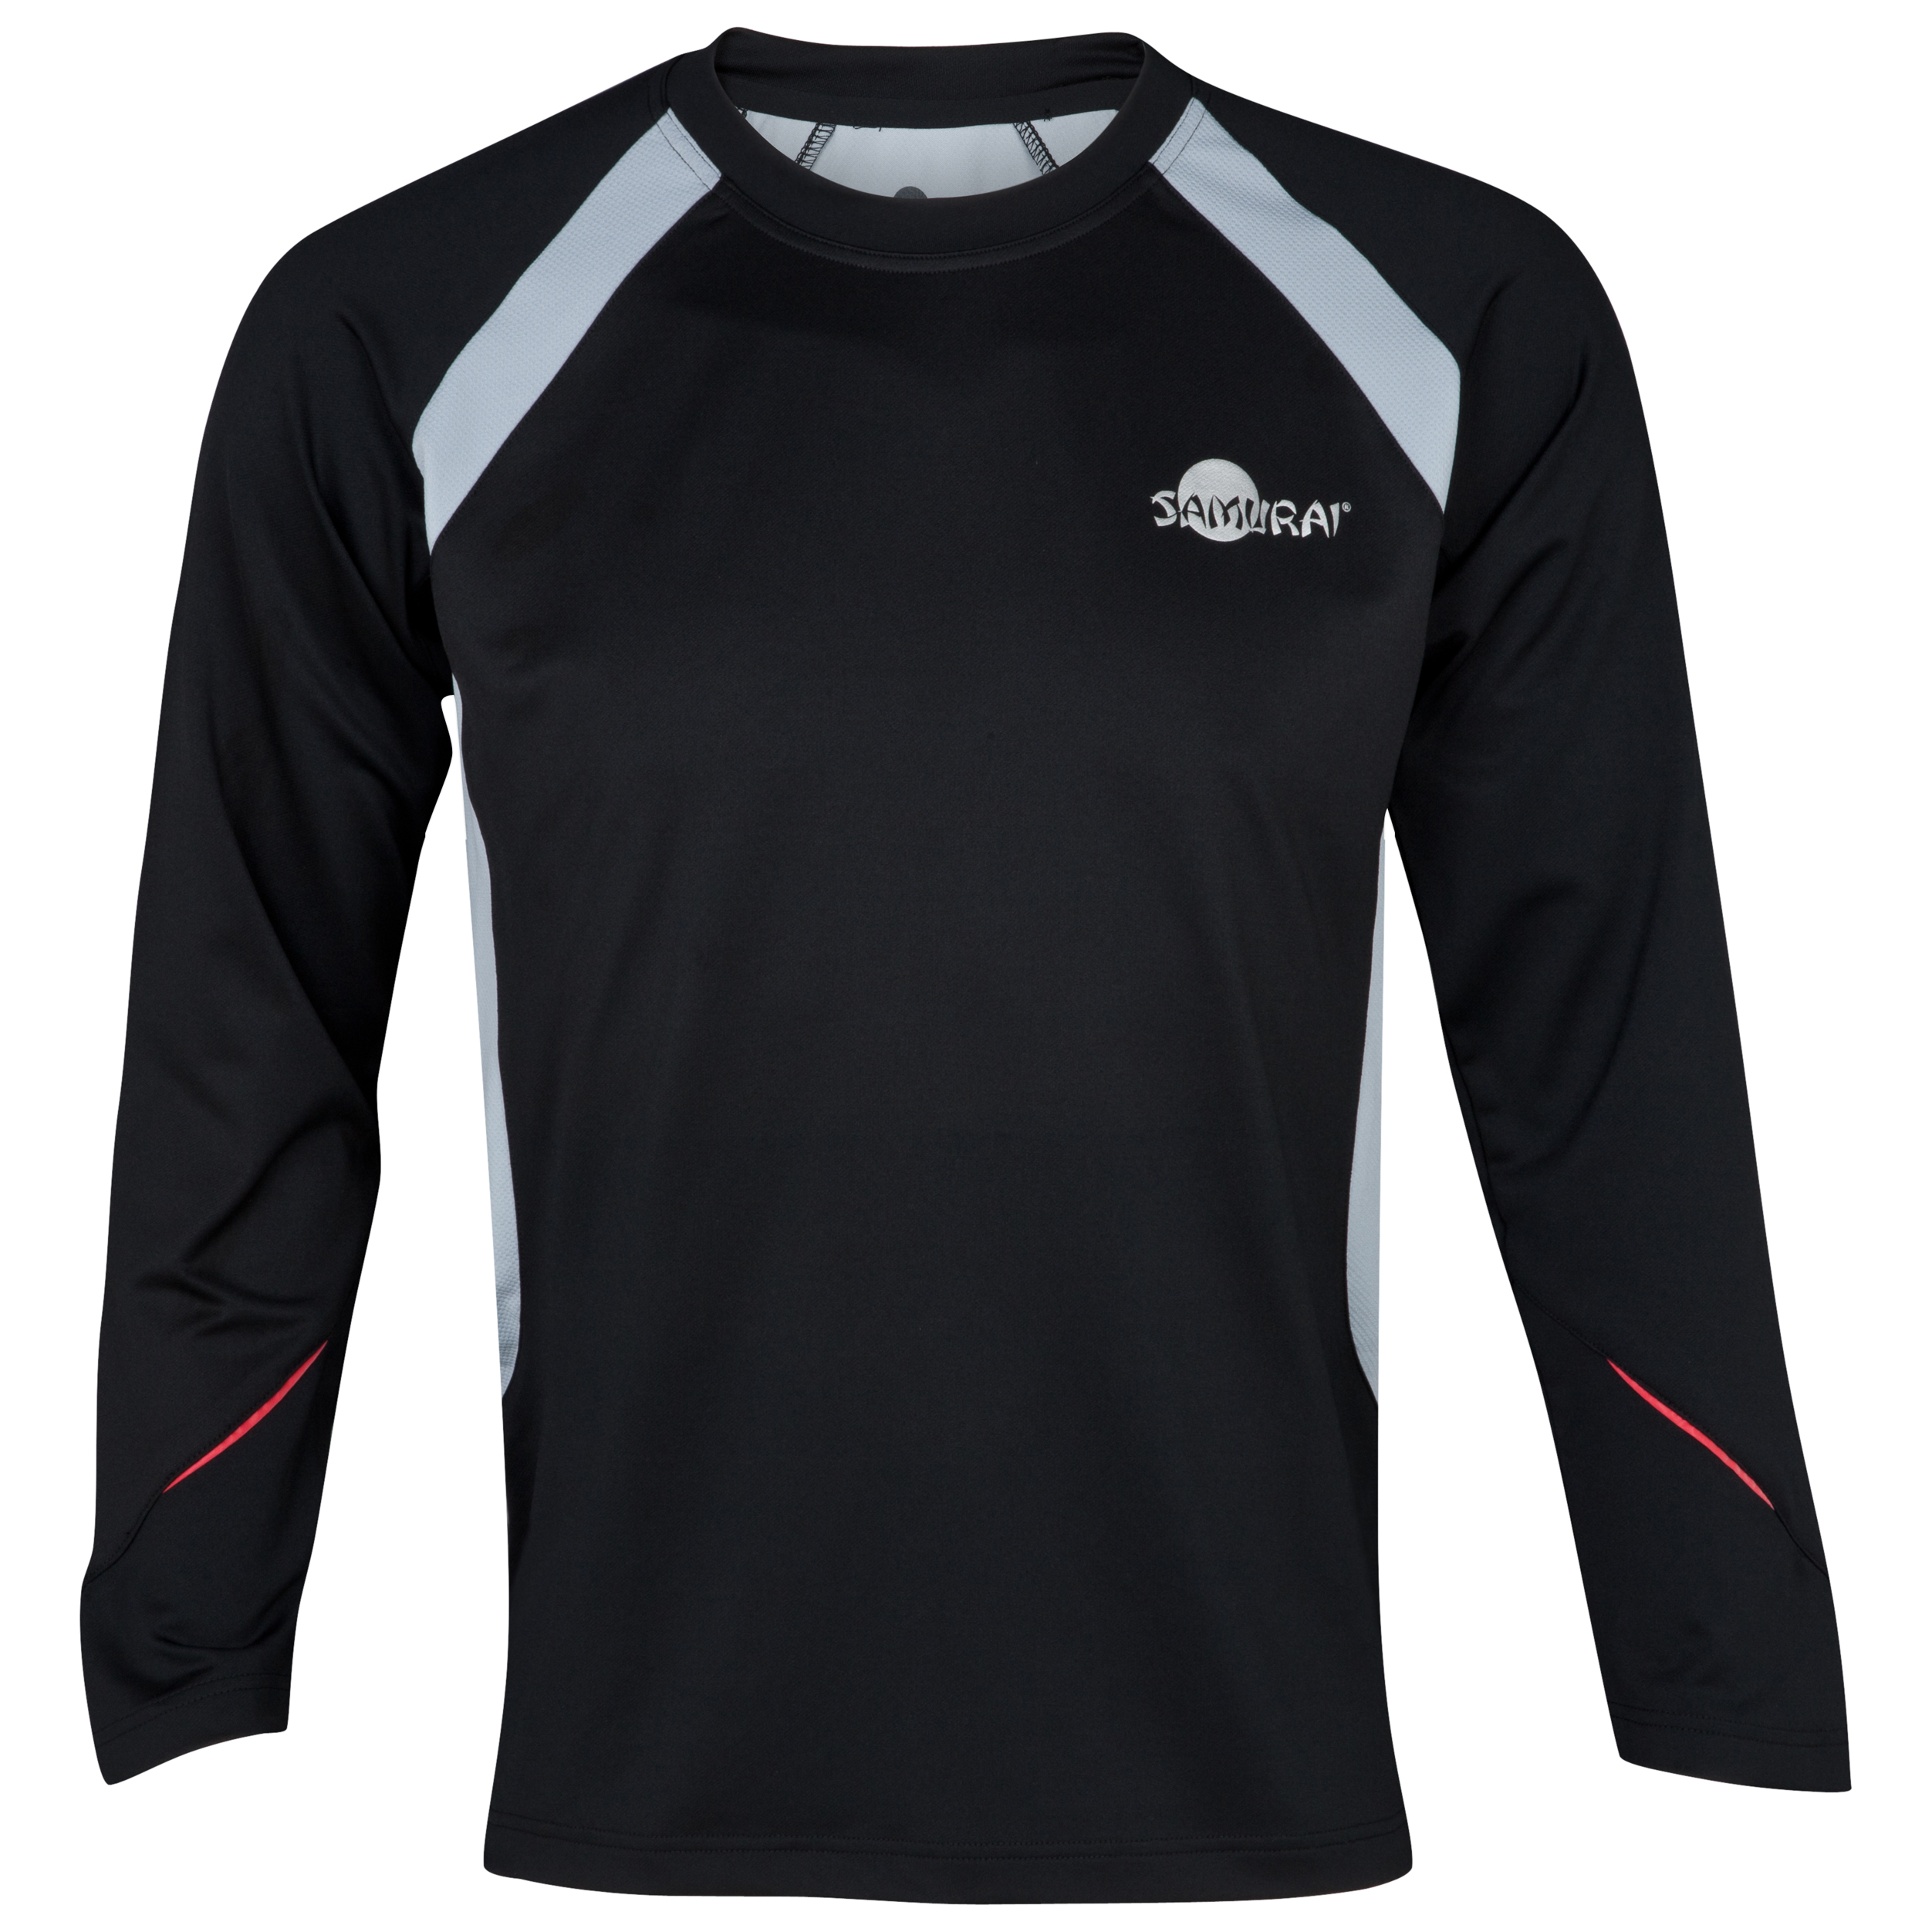 Samurai Rugby Elite Long Sleeved T-Shirt - Black/Mist